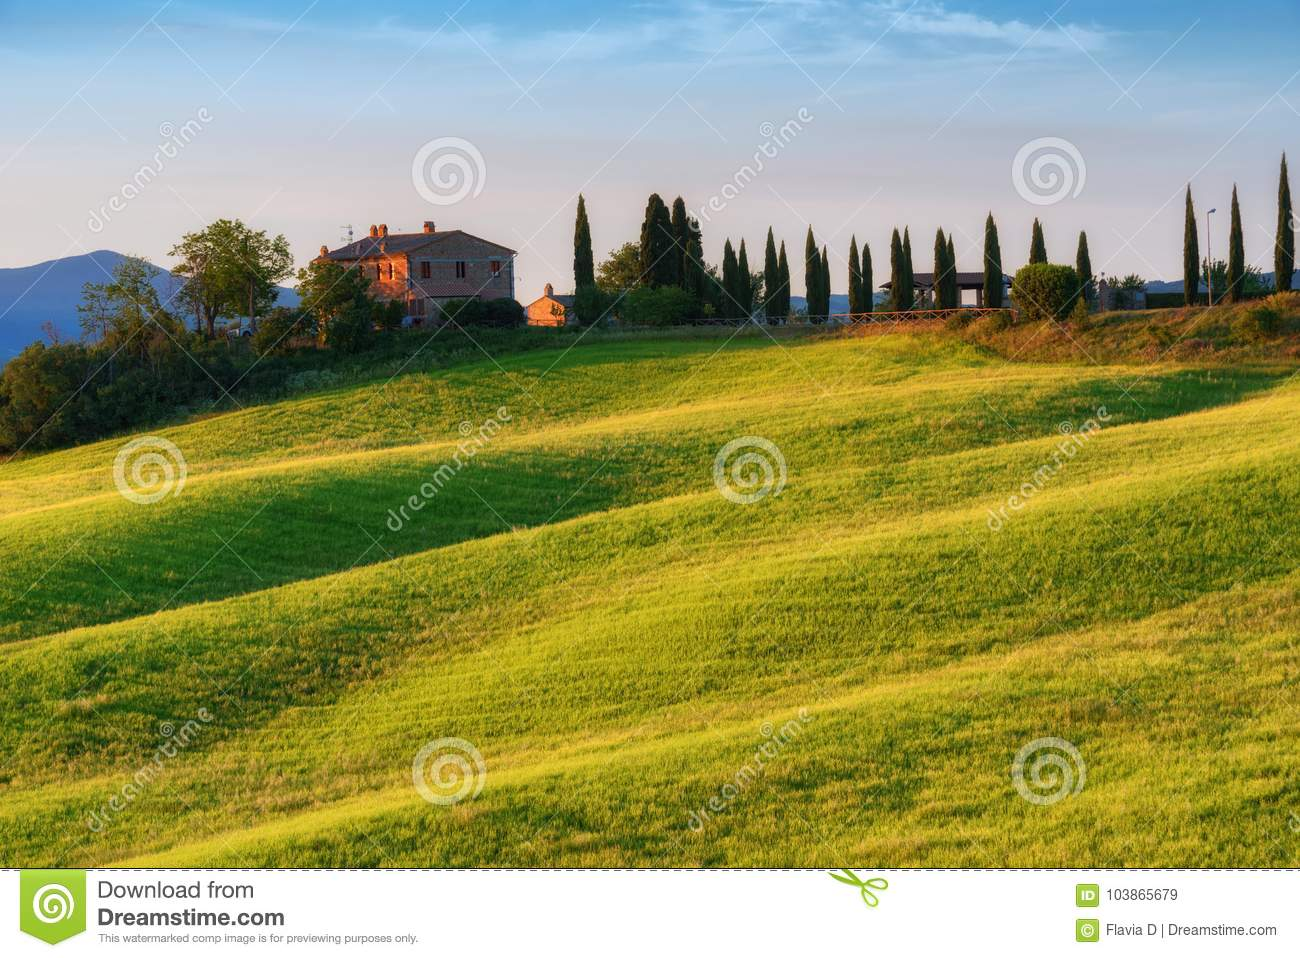 Magnificent spring landscape at sunrise.Beautiful view of typical tuscan farm house, green wave hills.